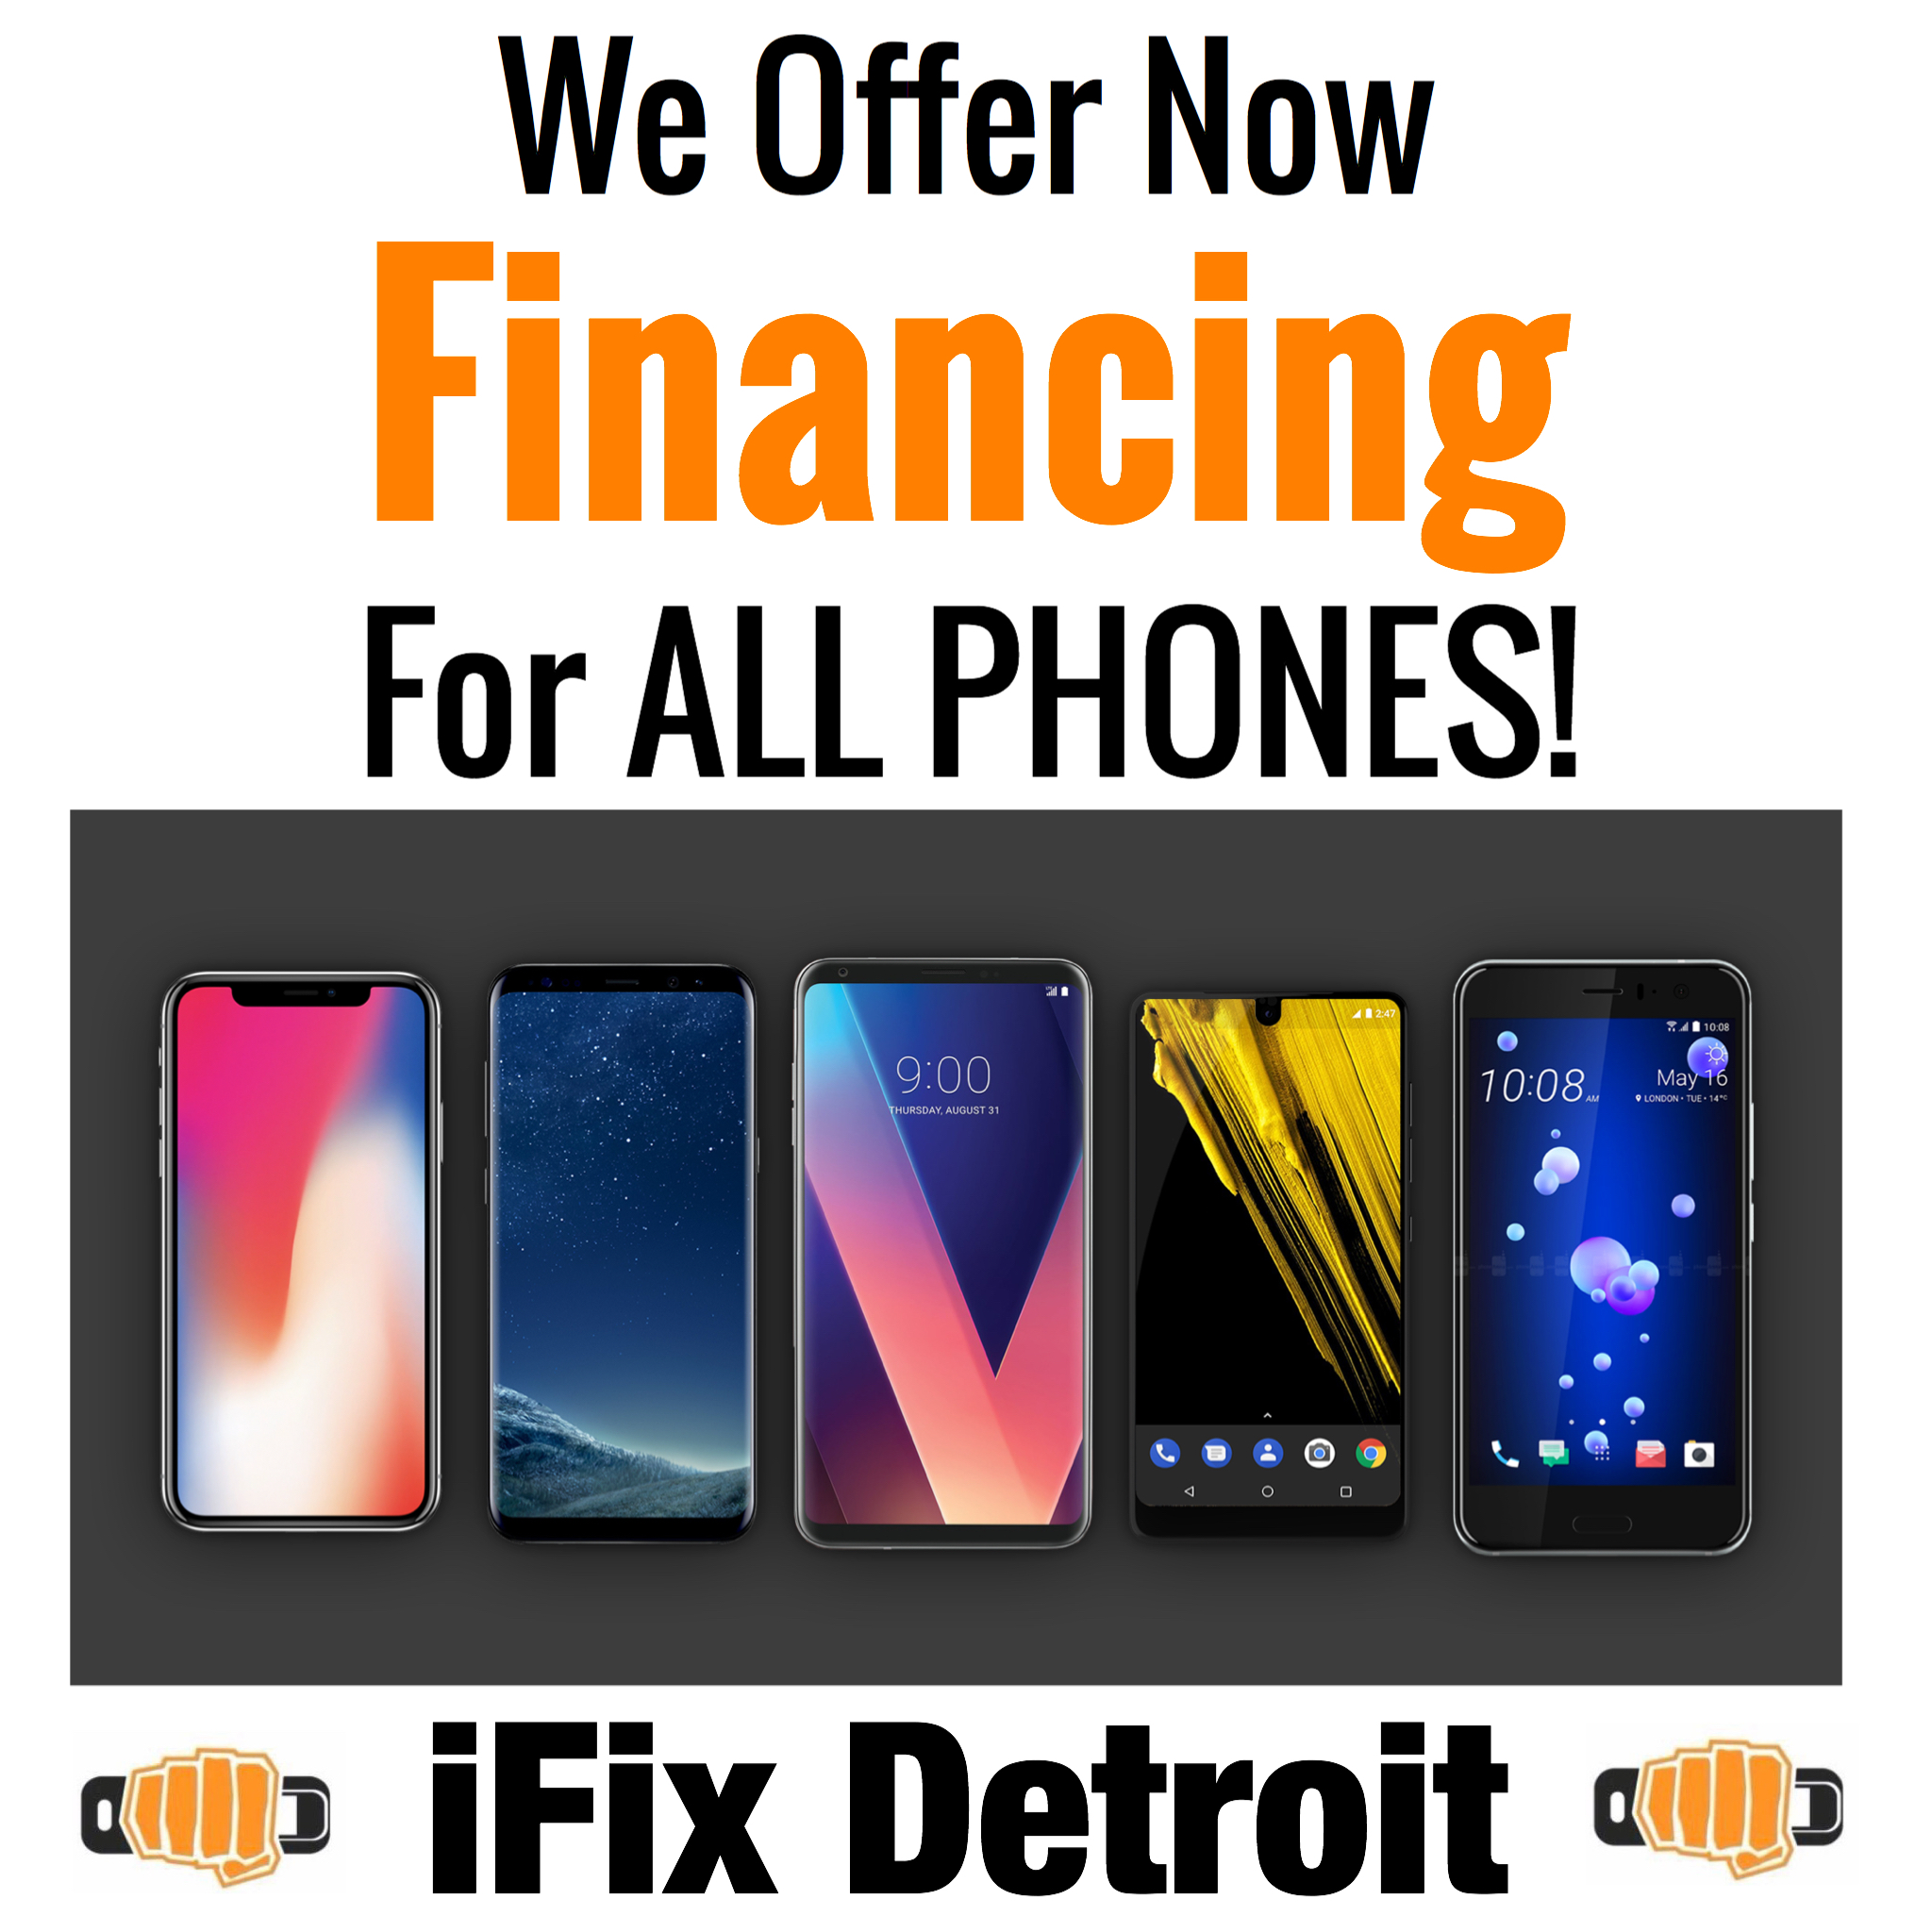 Iphone Repair Store In Detroit Mi Prepaid Plans Smartphone